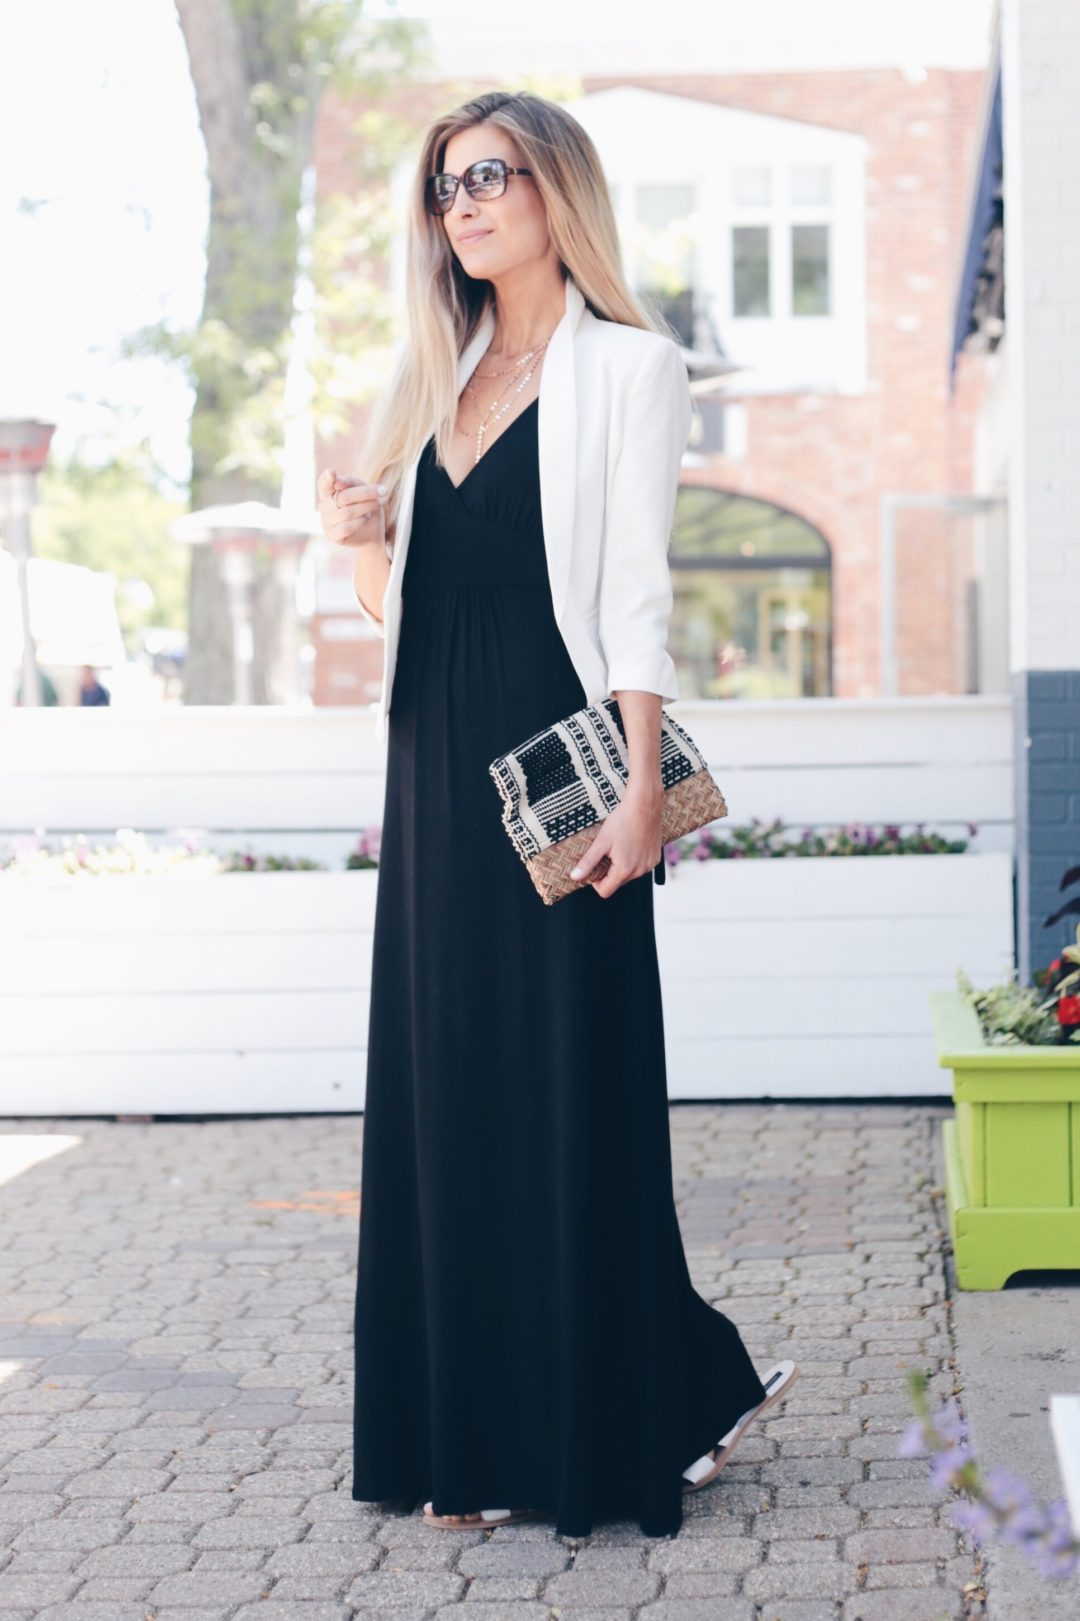 0014b23154 Maxi dresses are a go-to staple for the summer. They are super figure  flattering and SUPER comfortable. But